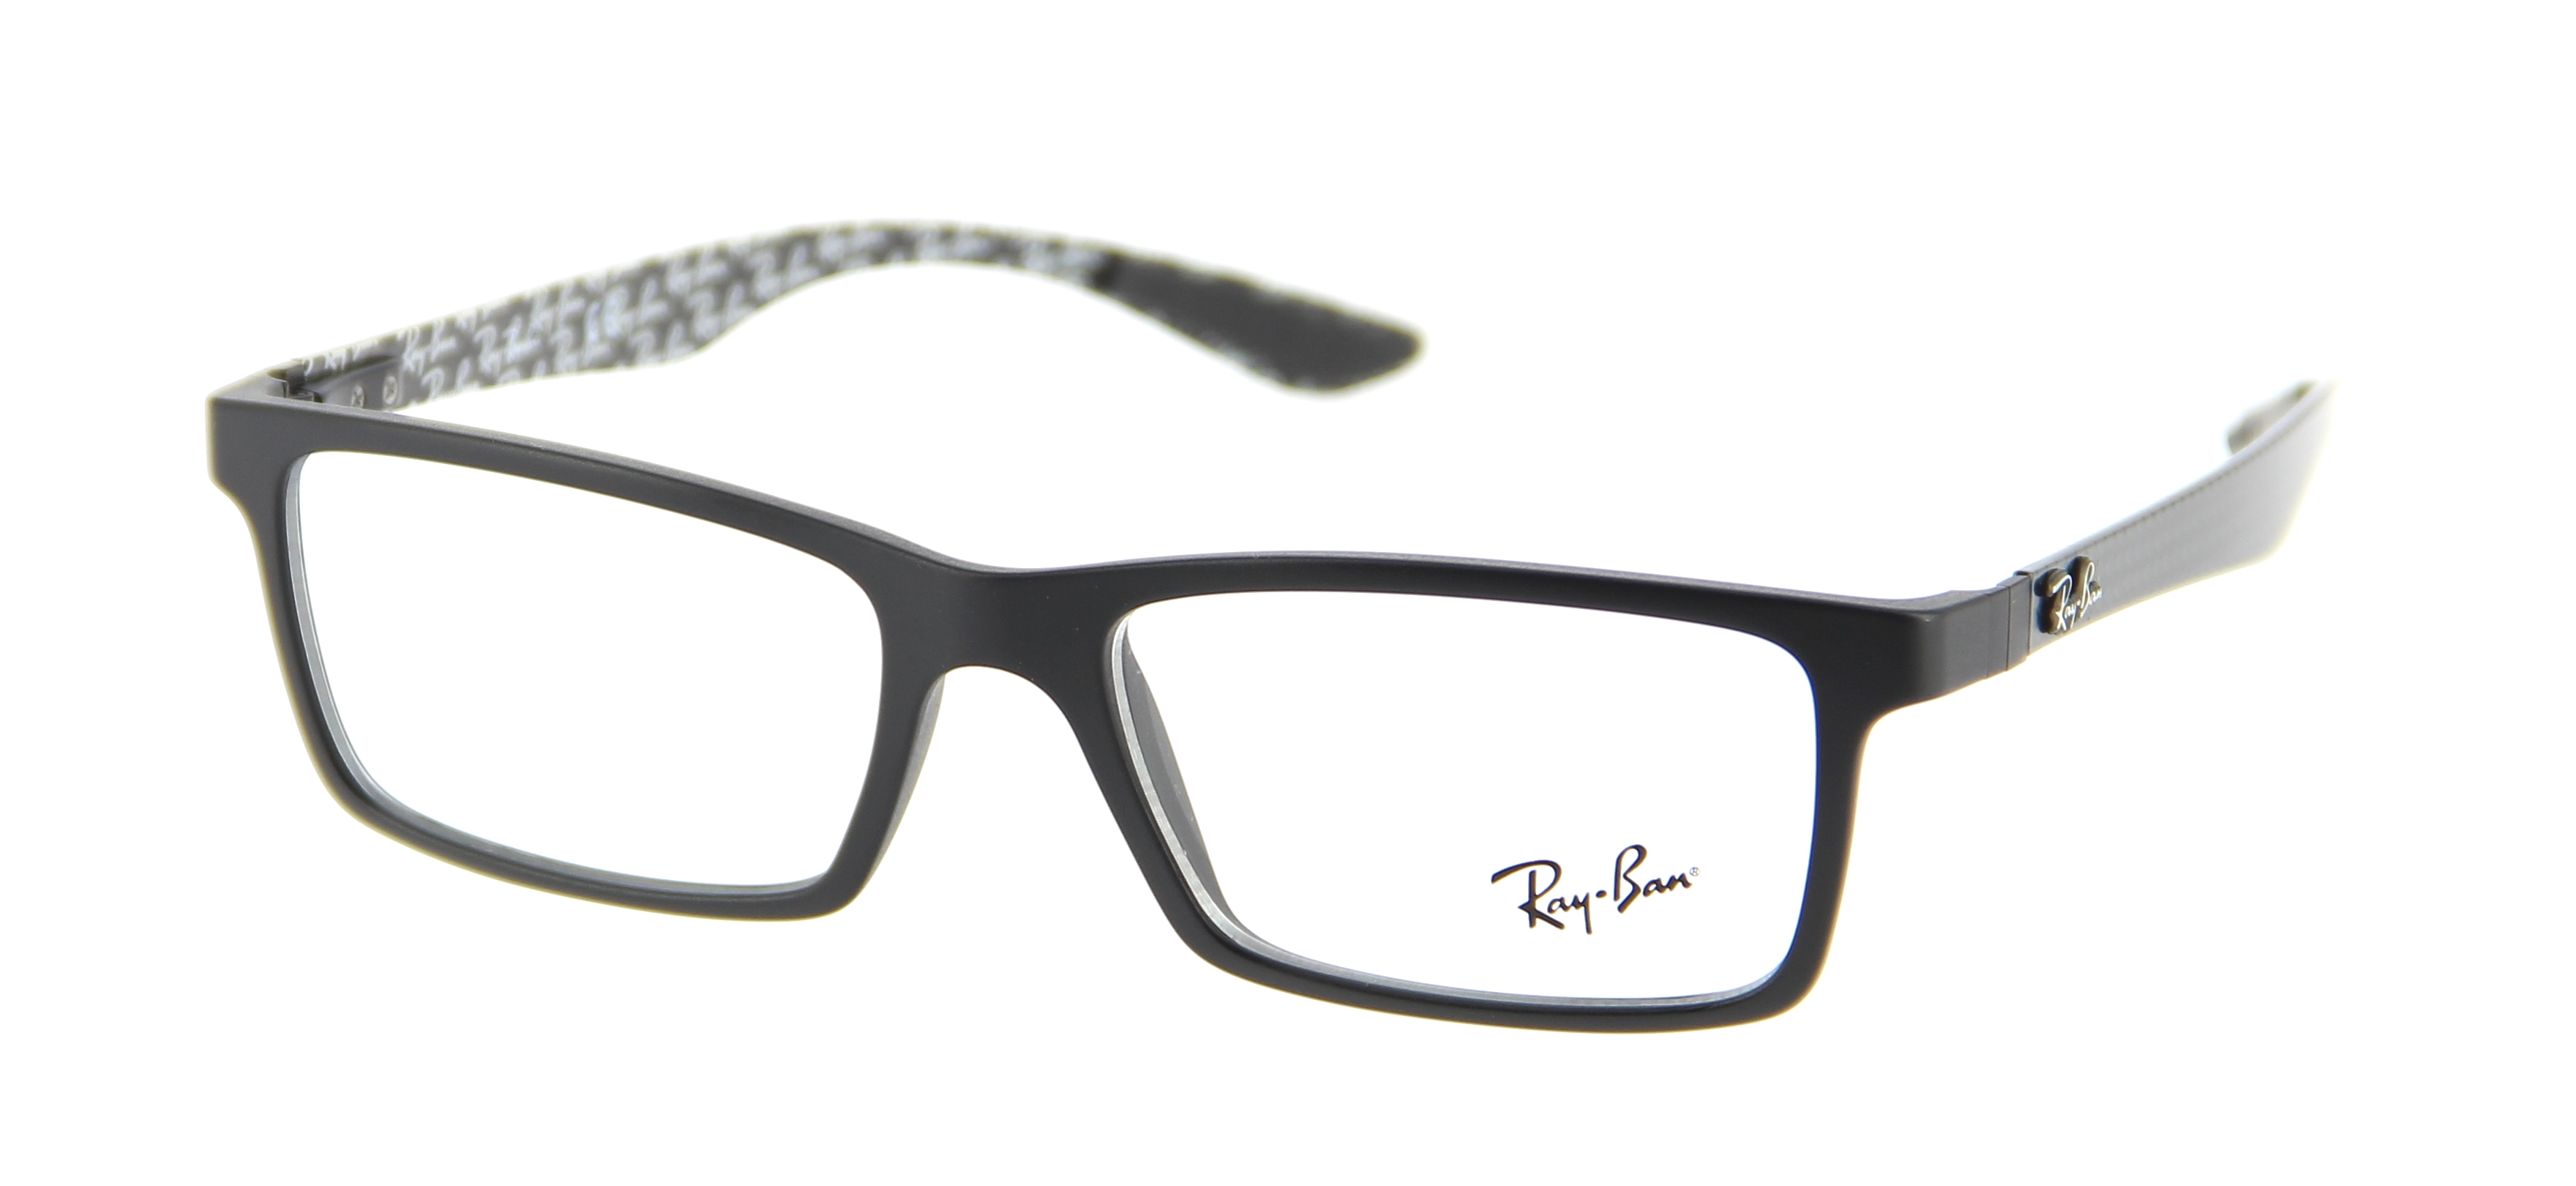 b6efdbd98a6f1 Monture Ray Ban Carbone - atlantabeadgallery